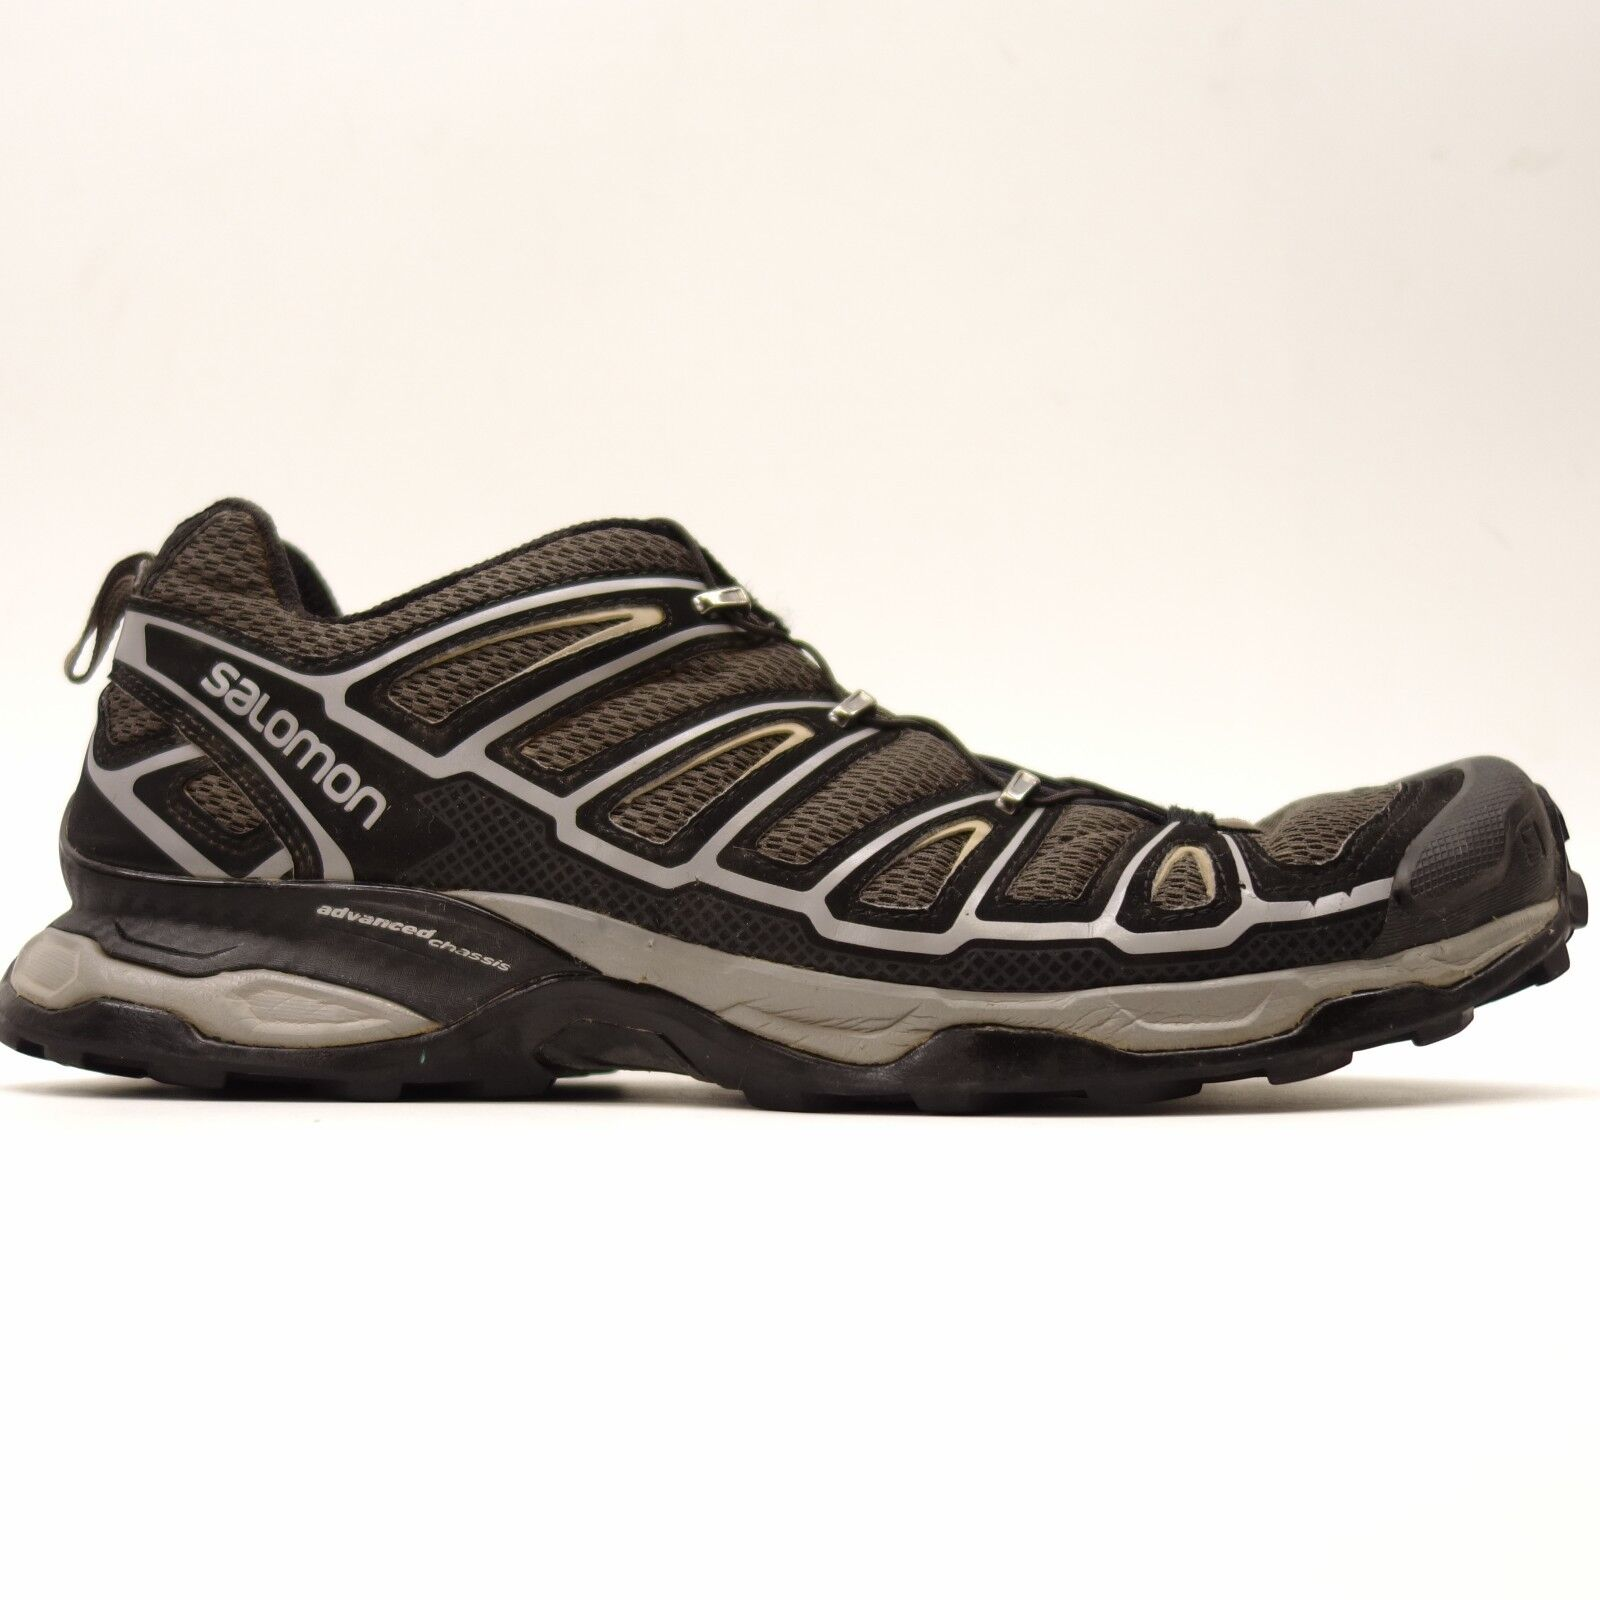 Salomon  Uomo X Ultra Breathable 2 Gray Mesh Athletic Breathable Ultra Trail Schuhes Größe 13 787f5b